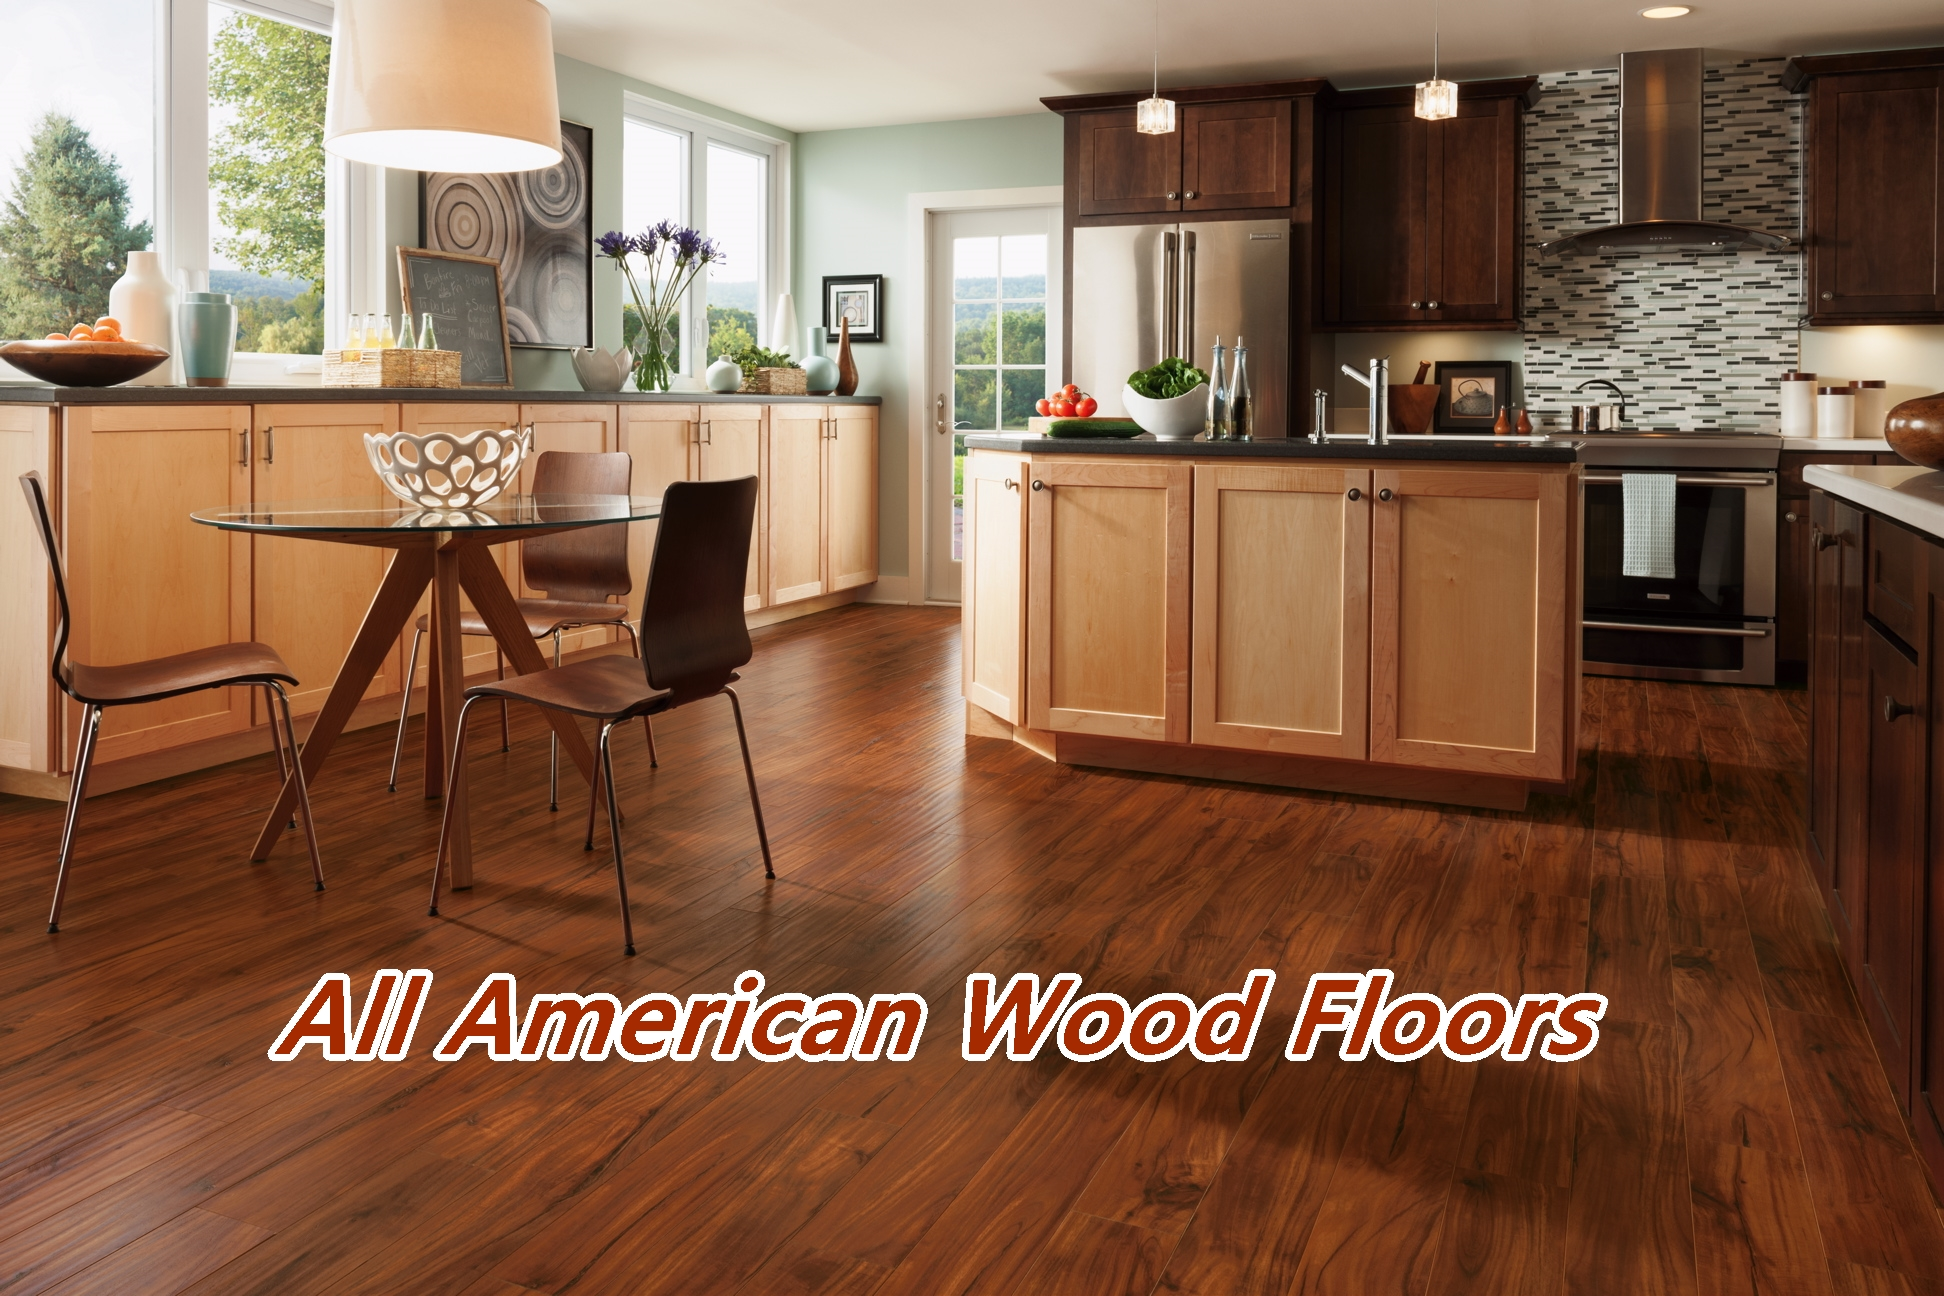 Wooden Floors In Kitchens All American Wood Floors Orlando Winter Park Melbourne